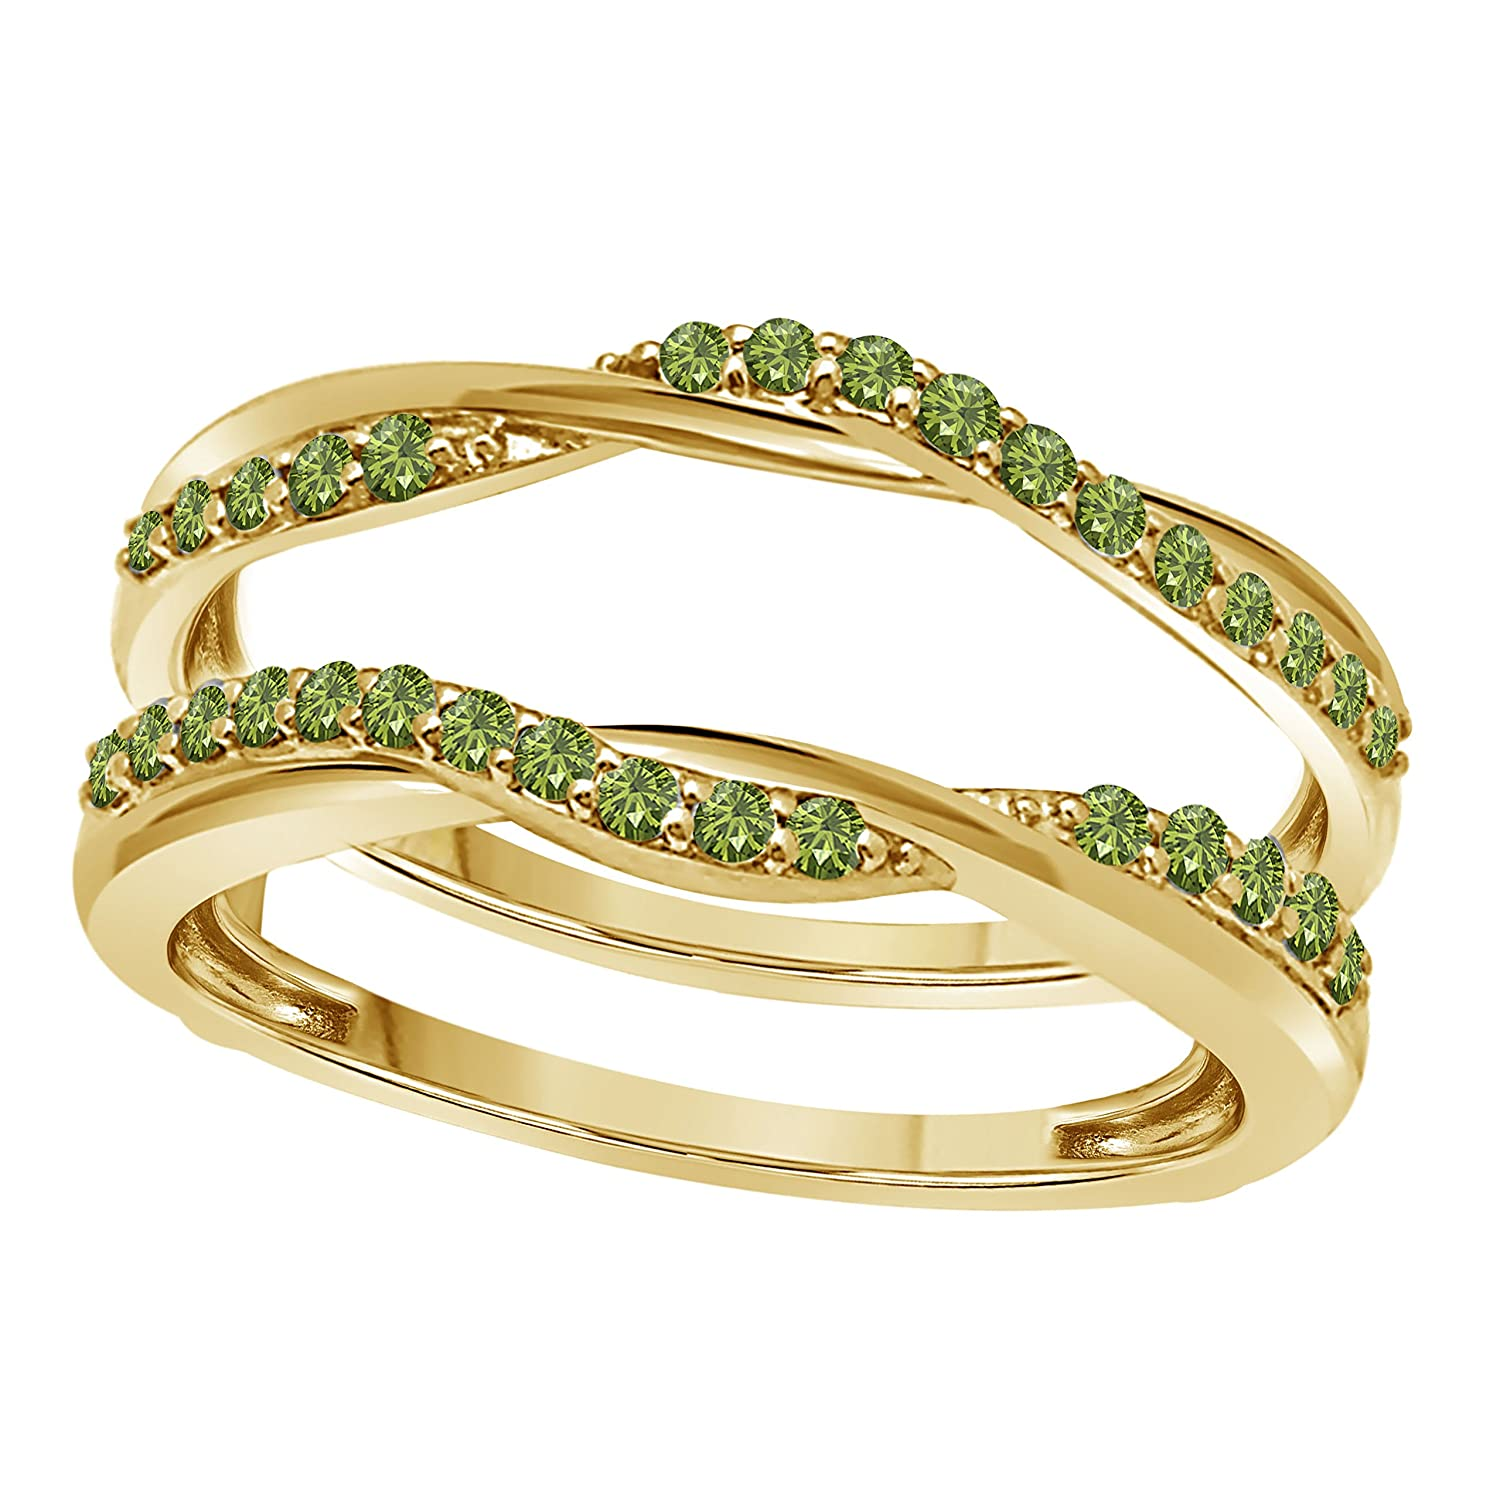 Silver Gems Factory 14k Yellow Gold Finish Delicate Bypass Infinity Style Vintage Wedding Ring Criss Cross Guard Enhancer With Cz Green: Delicate Vintage Wedding Rings At Websimilar.org